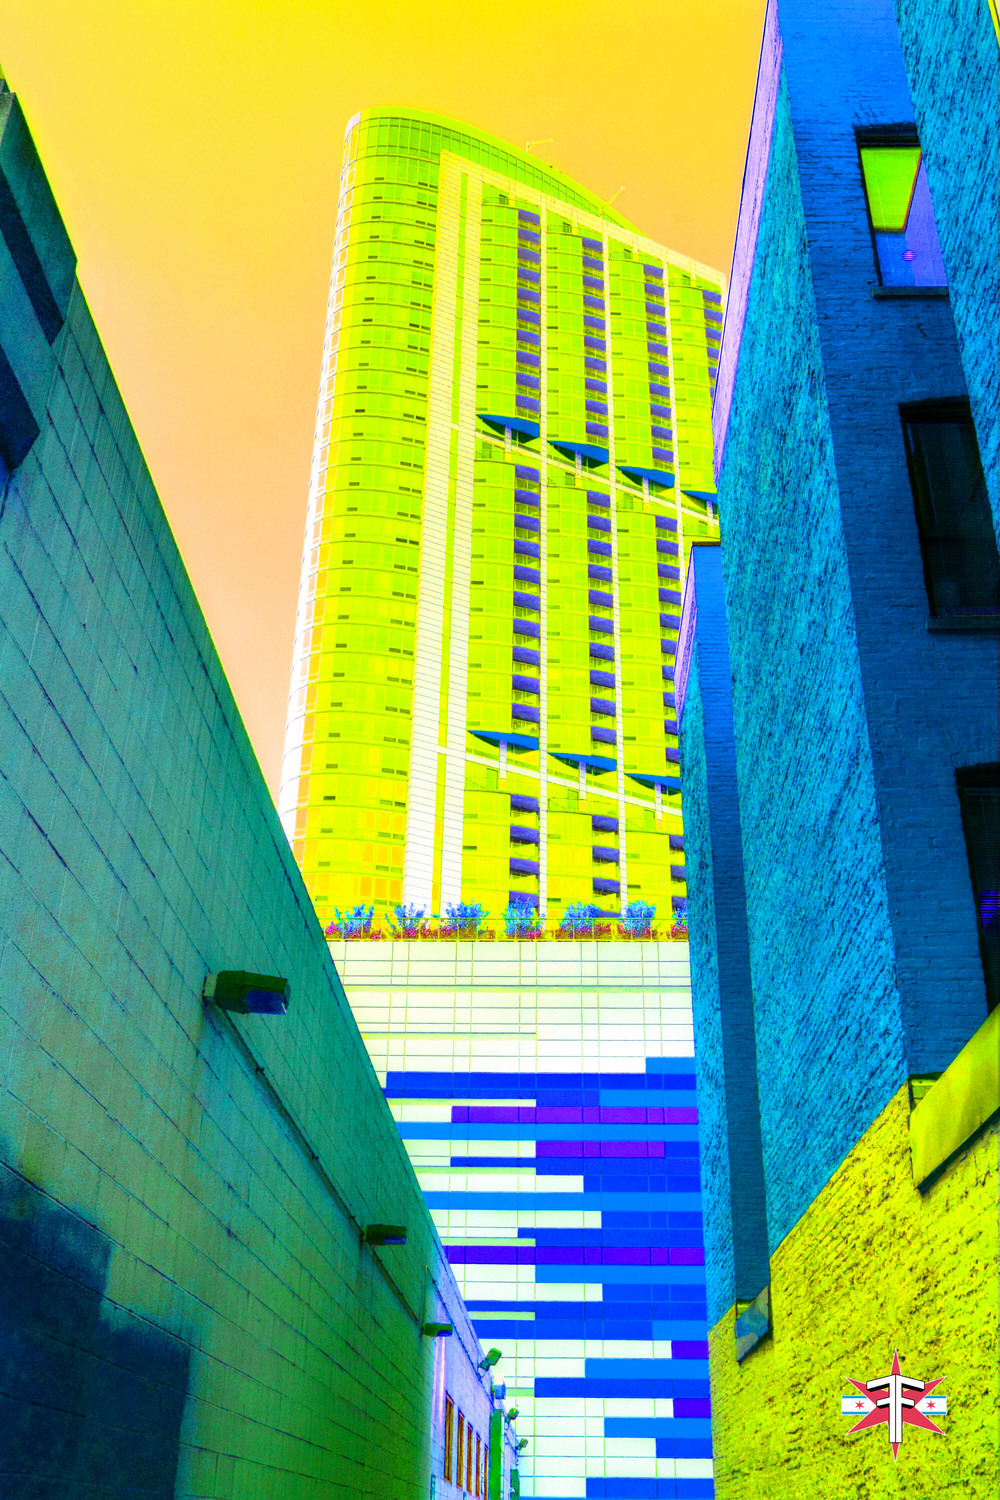 chicago art abstract eric formato photography color travel cityscape architecture saturated citycapes bright vibrant artistic-54-2.jpg